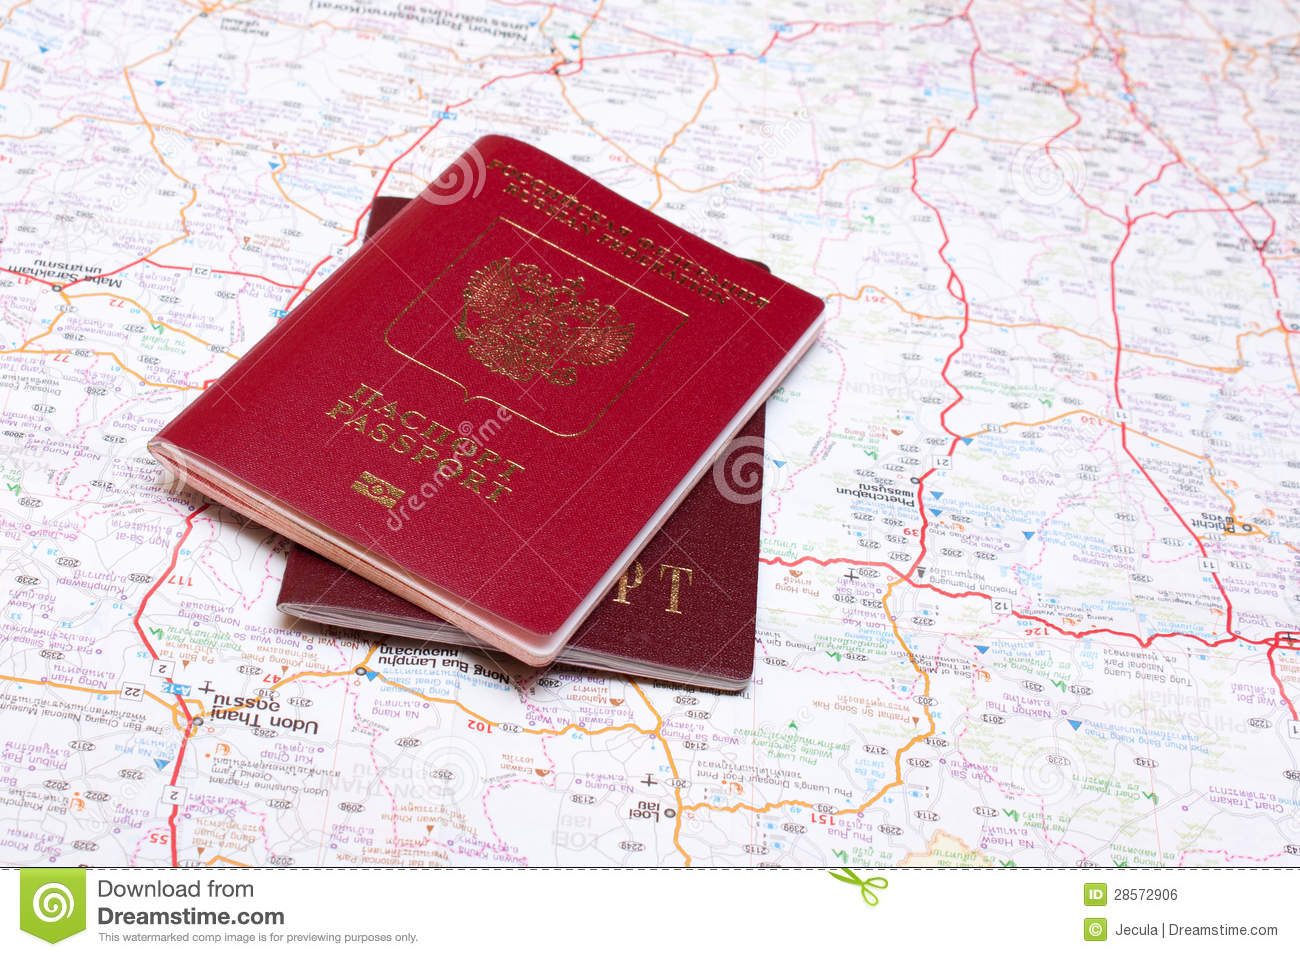 Two passports on the map